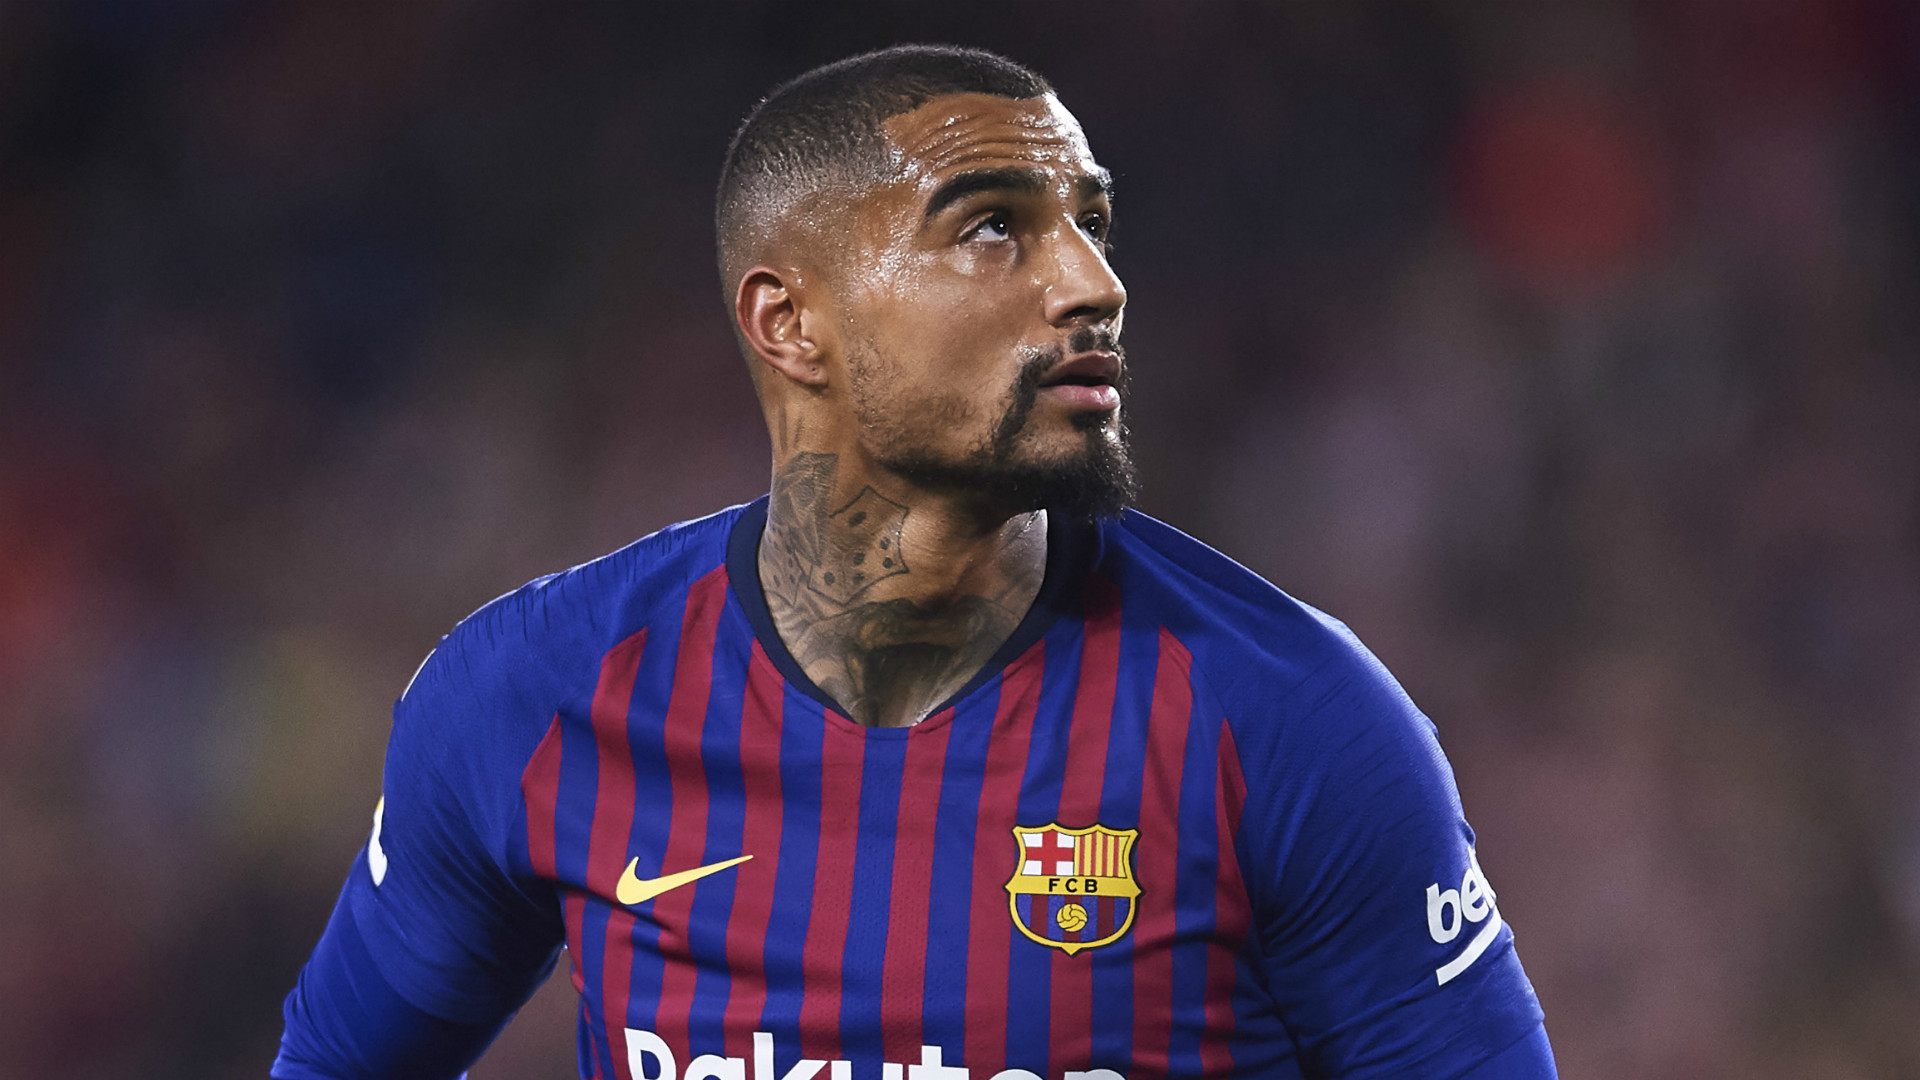 KP Boateng's future at Barcelona in doubt | Goal.com